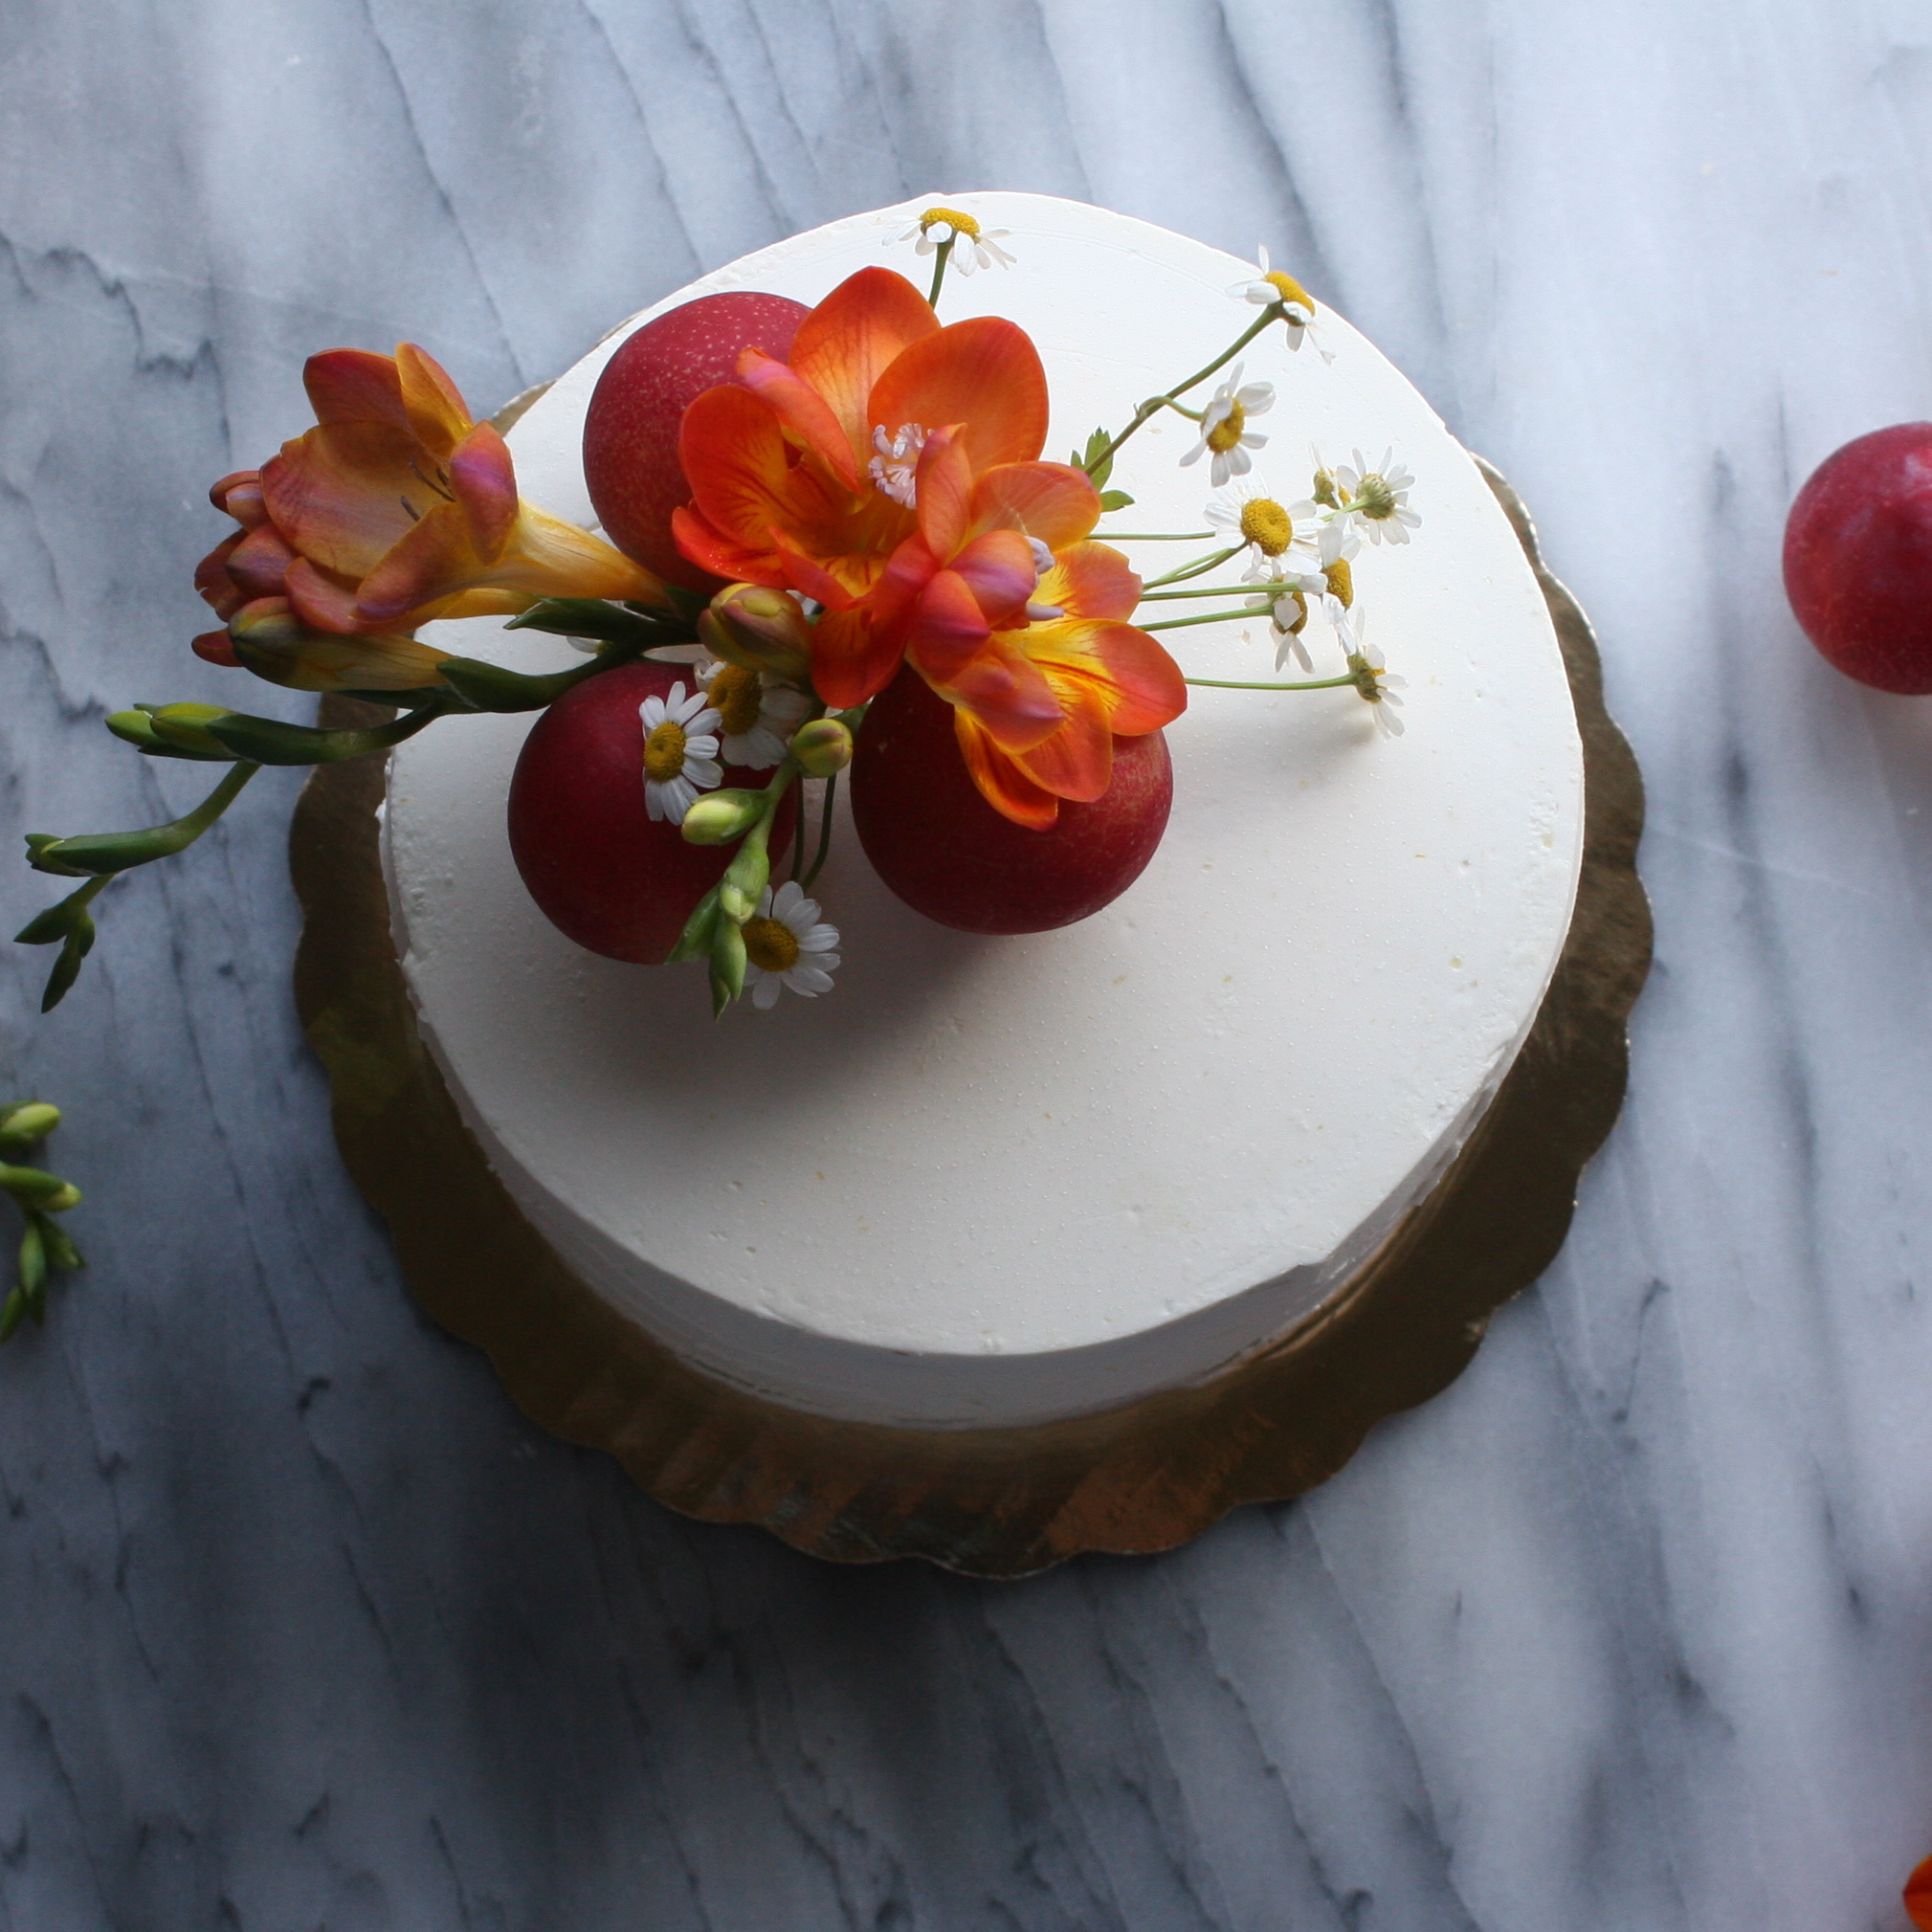 Summer cake styling inspiration with stone fruits and chamomile.JPG